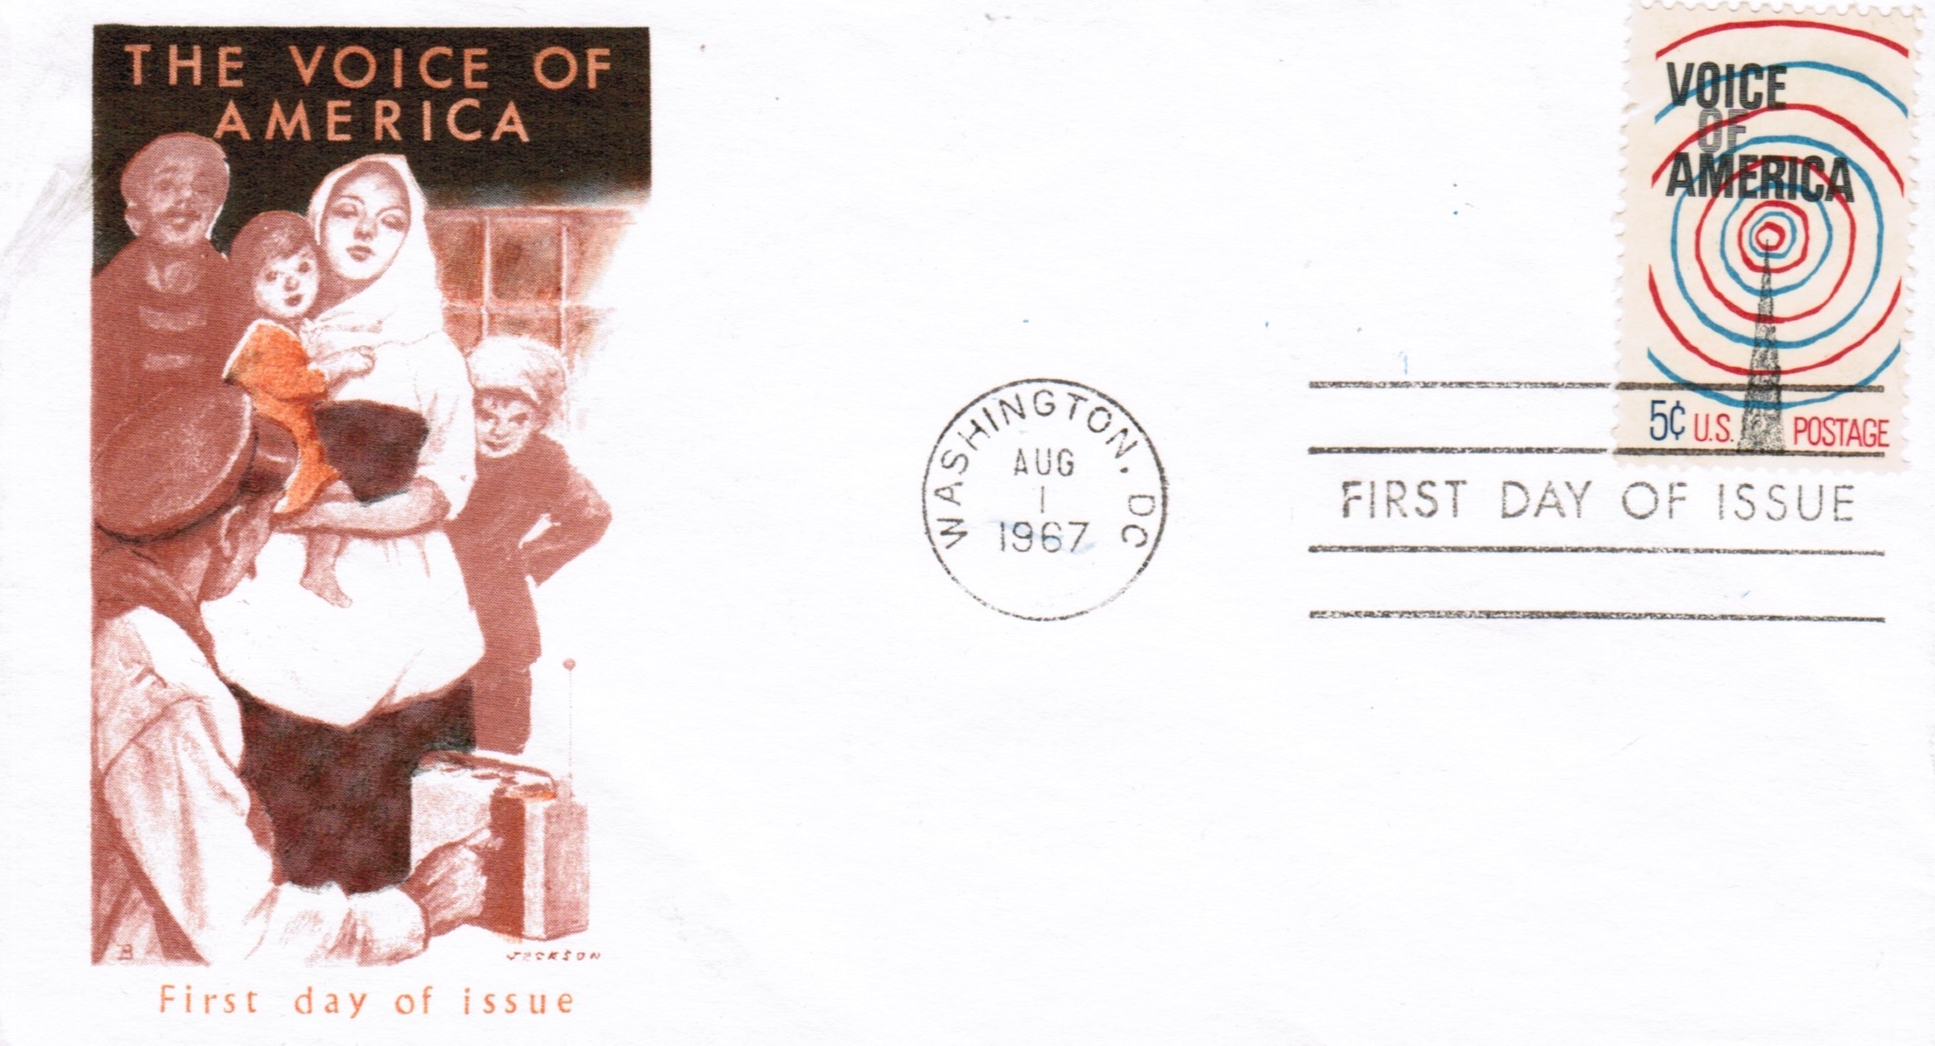 Voice of America August 1 1967 Stamp